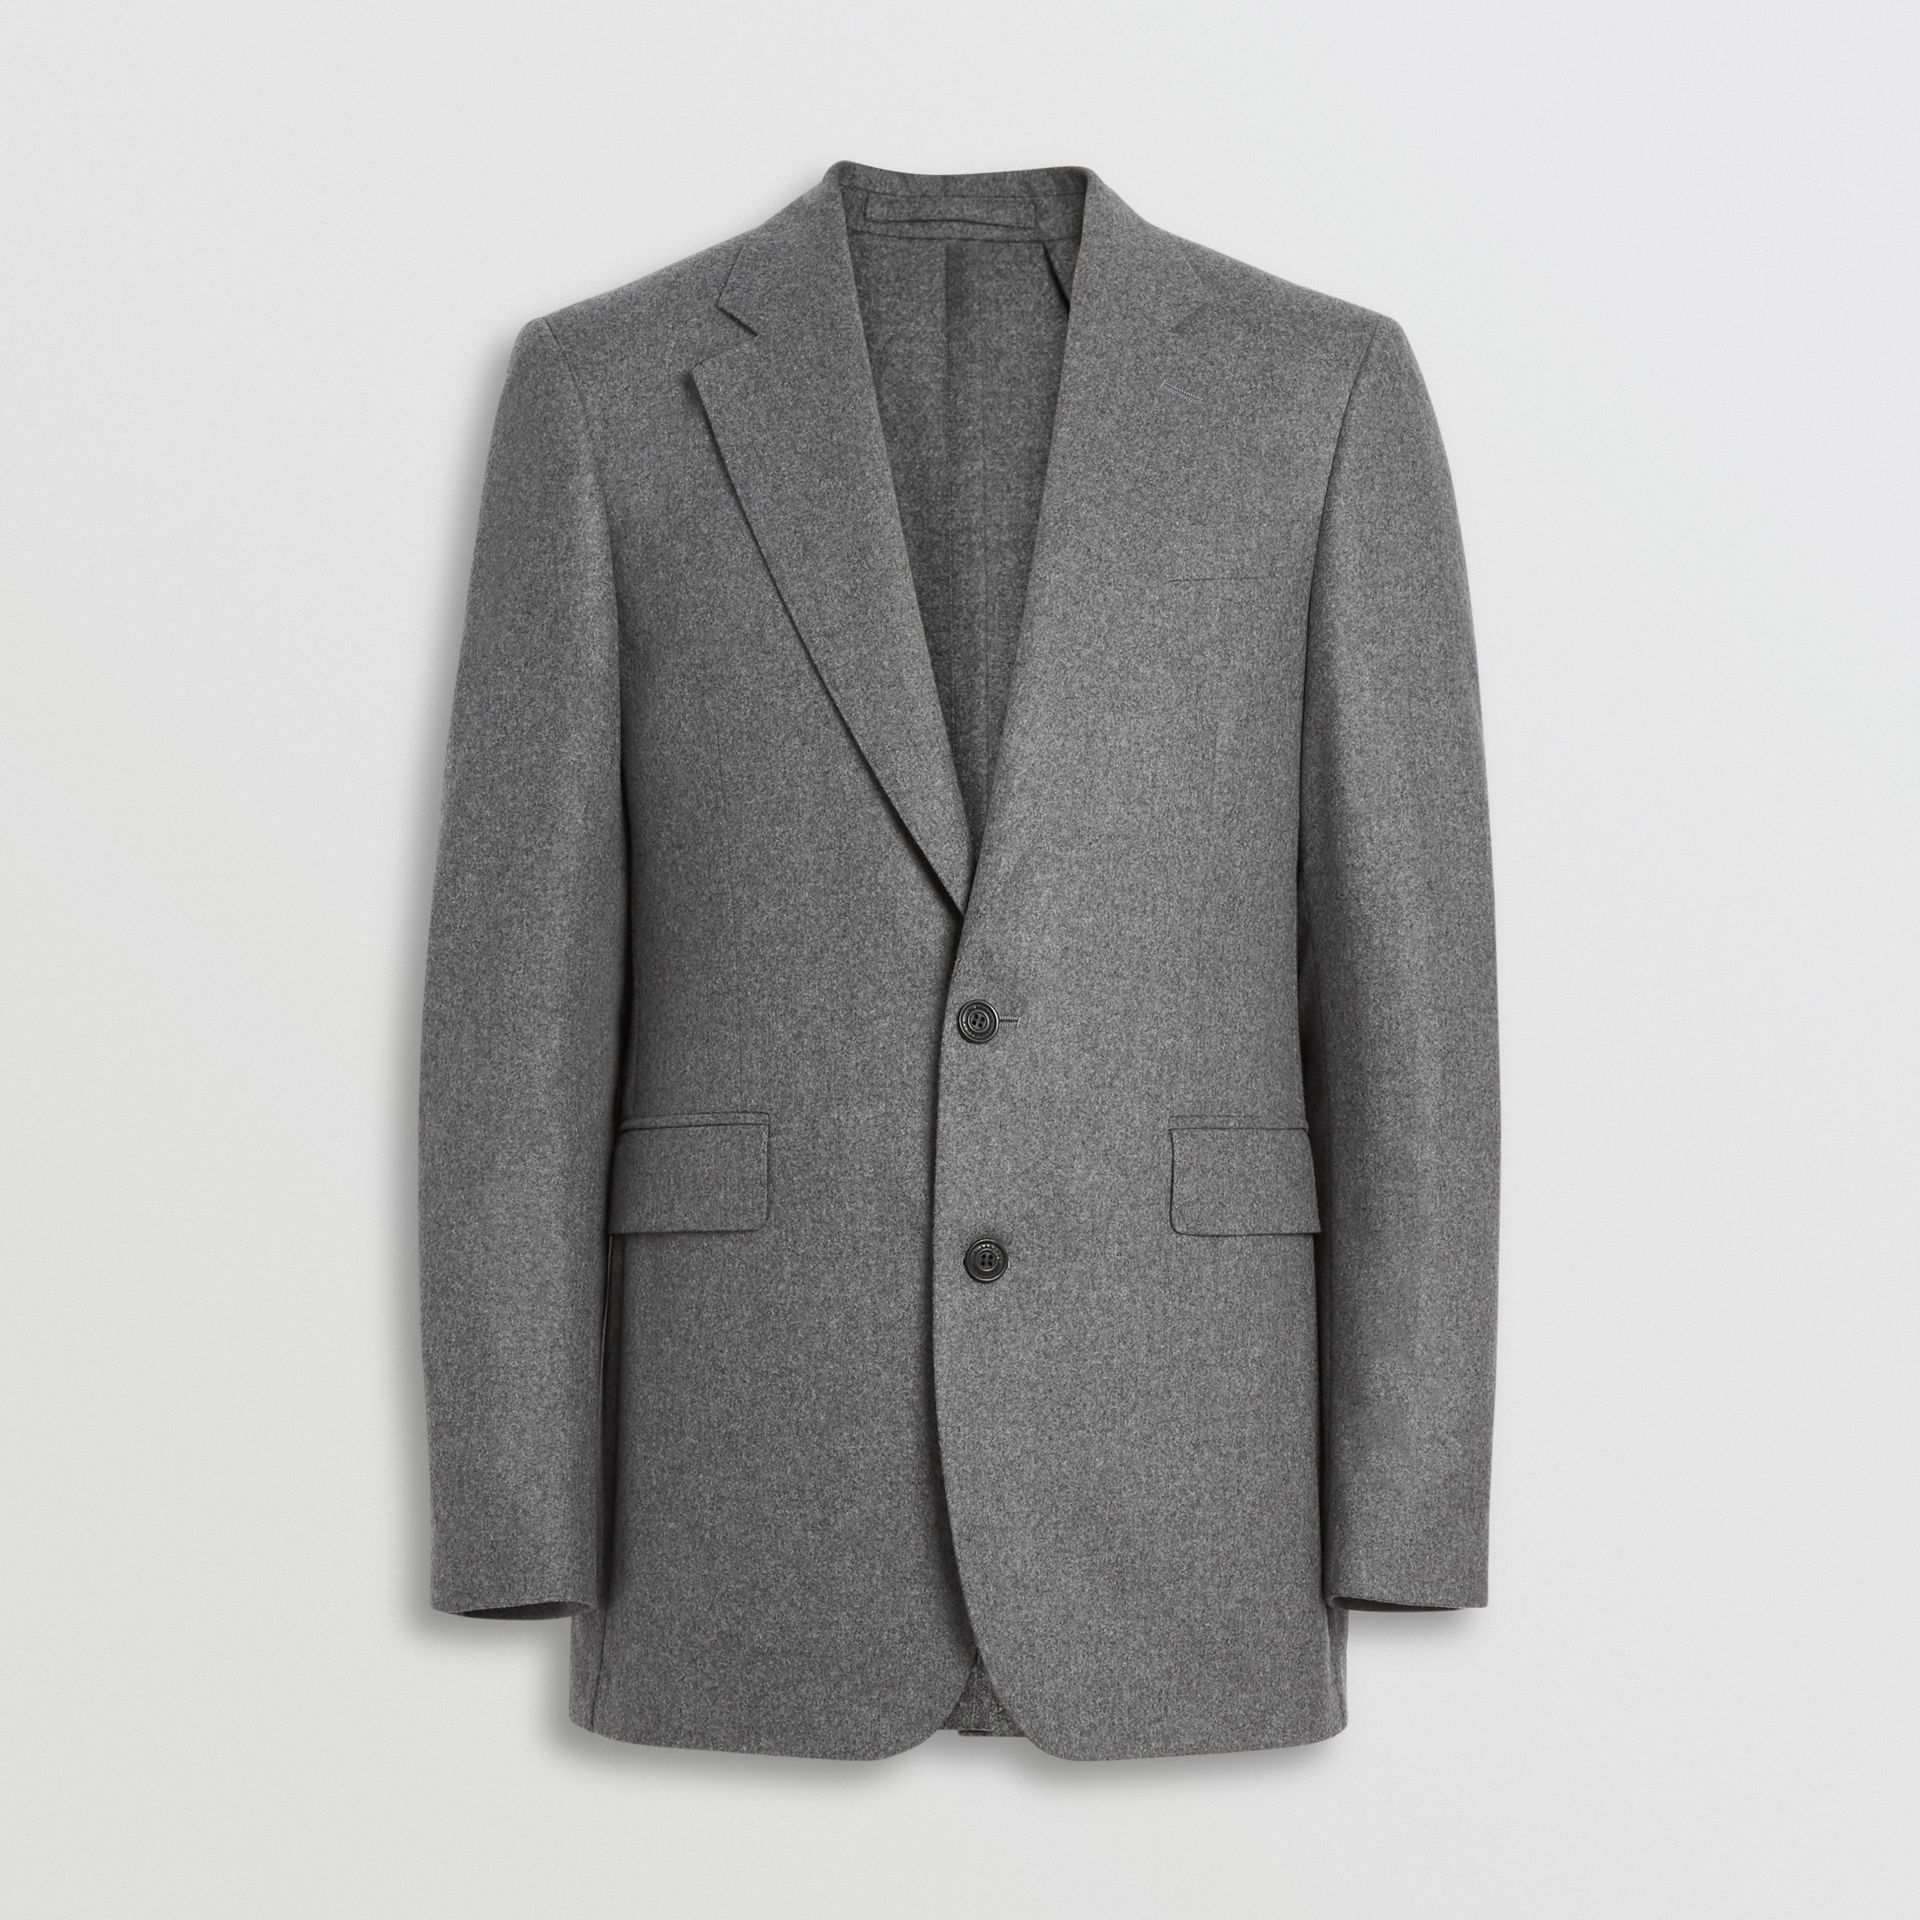 Classic Fit Wool Cashmere Tailored Jacket in Mid Grey Melange - Men | Burberry - gallery image 3